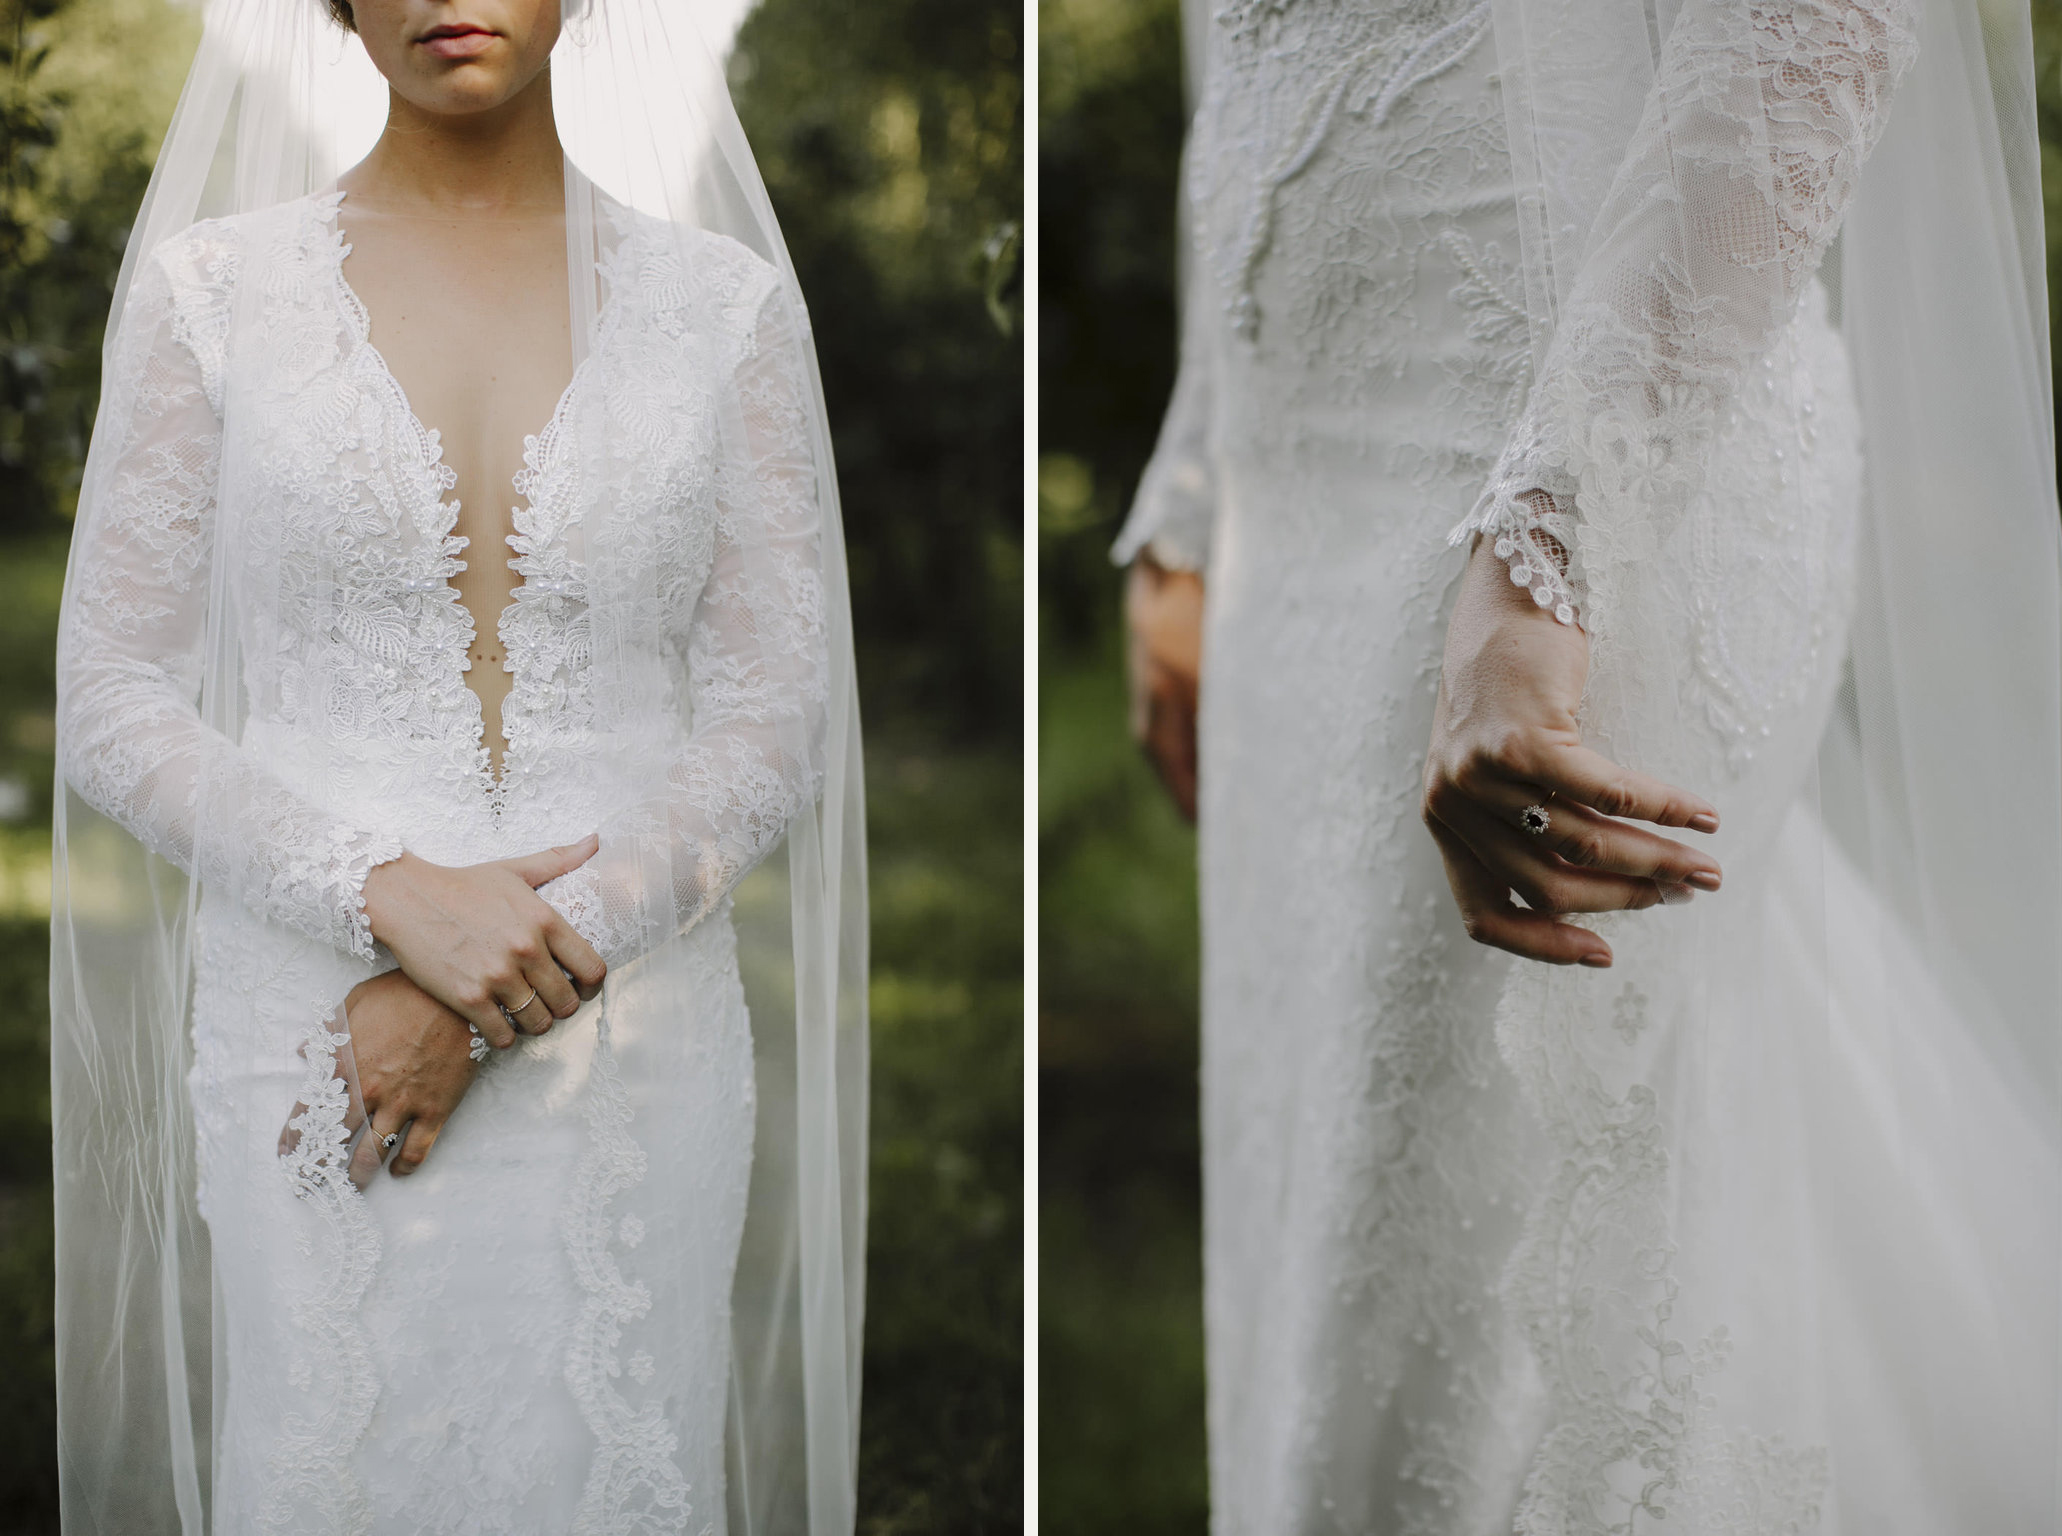 160827_justinaaron_wedding_cora_floris_preview-280-diptych.jpg